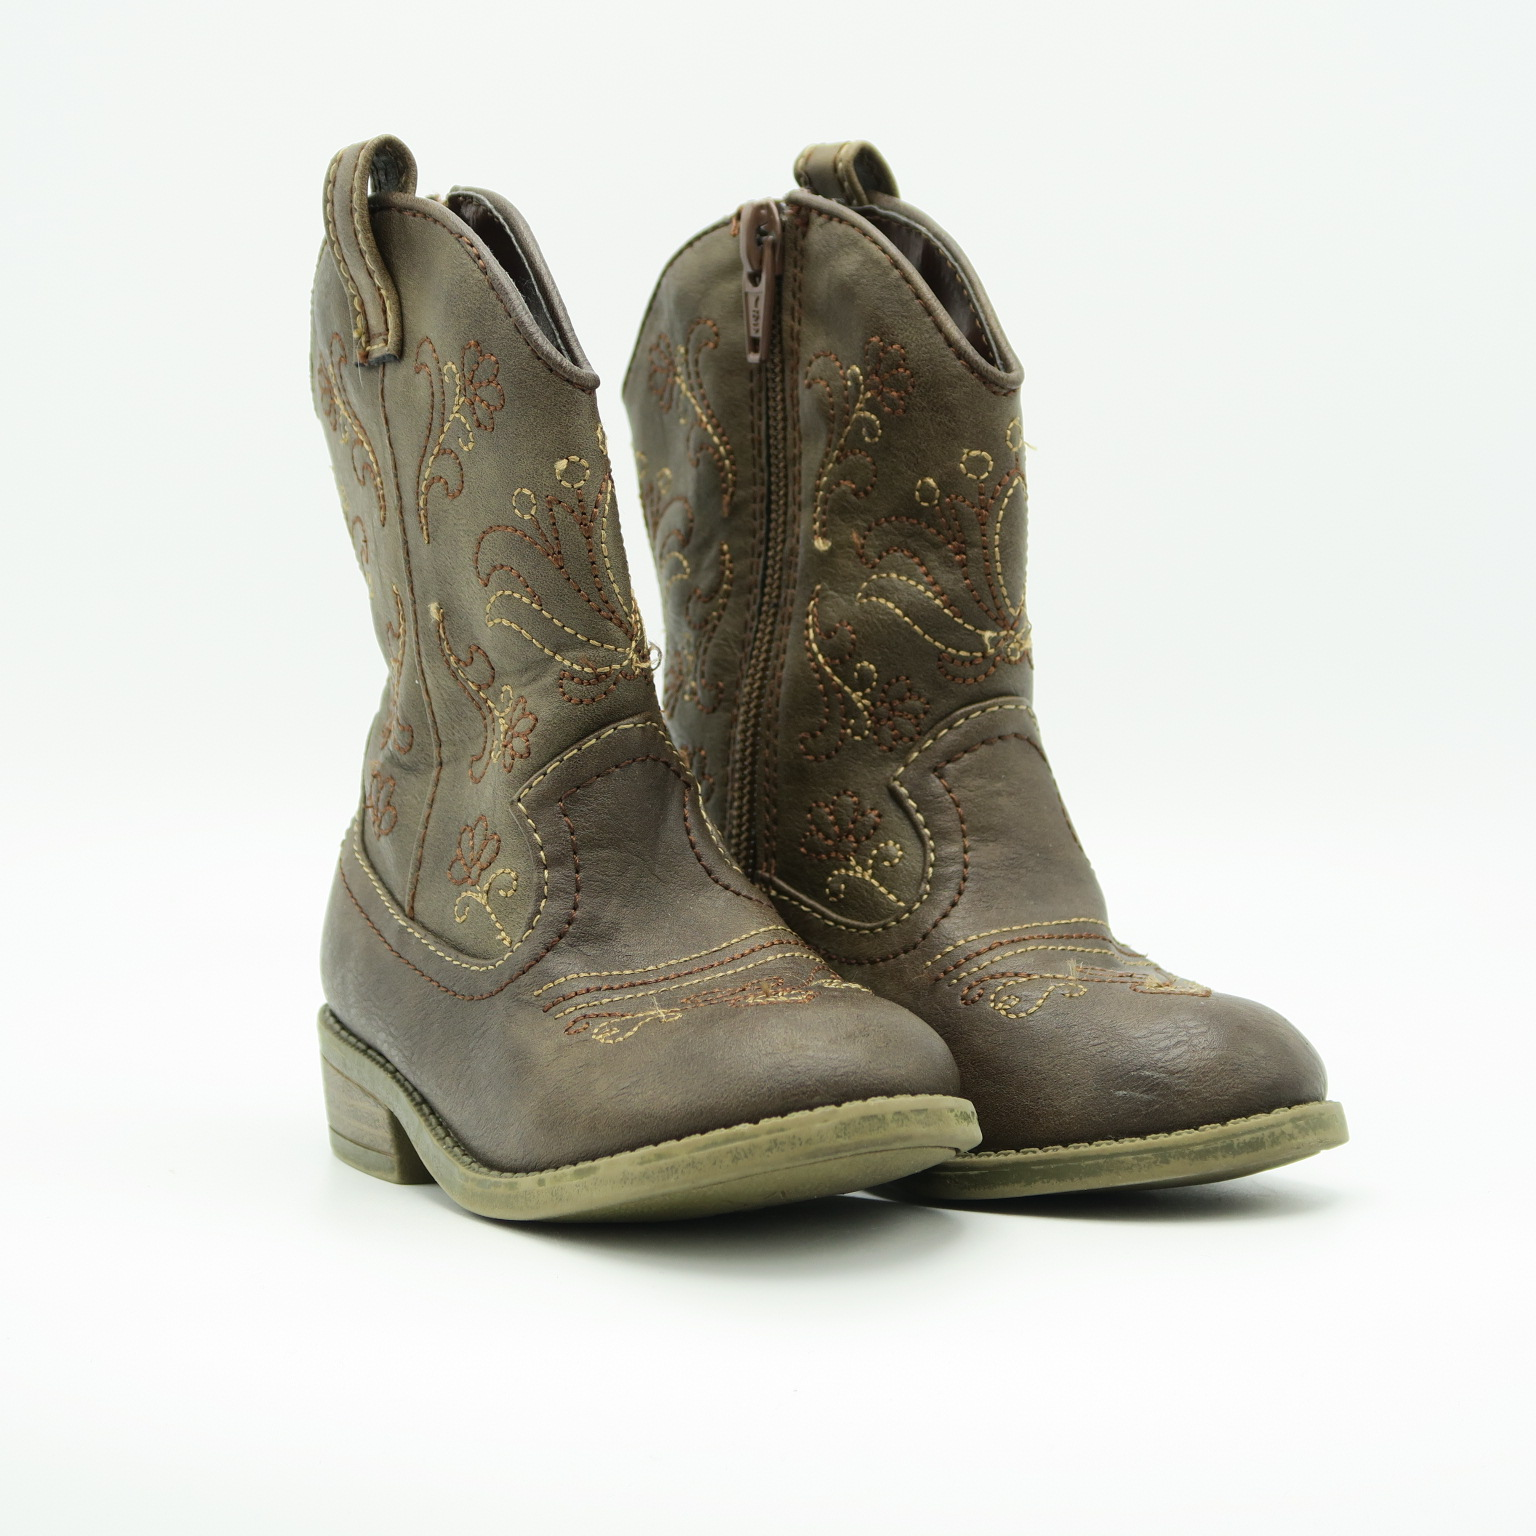 94c5b55cb2ea Boots size  7 Toddler - The Swoondle Society